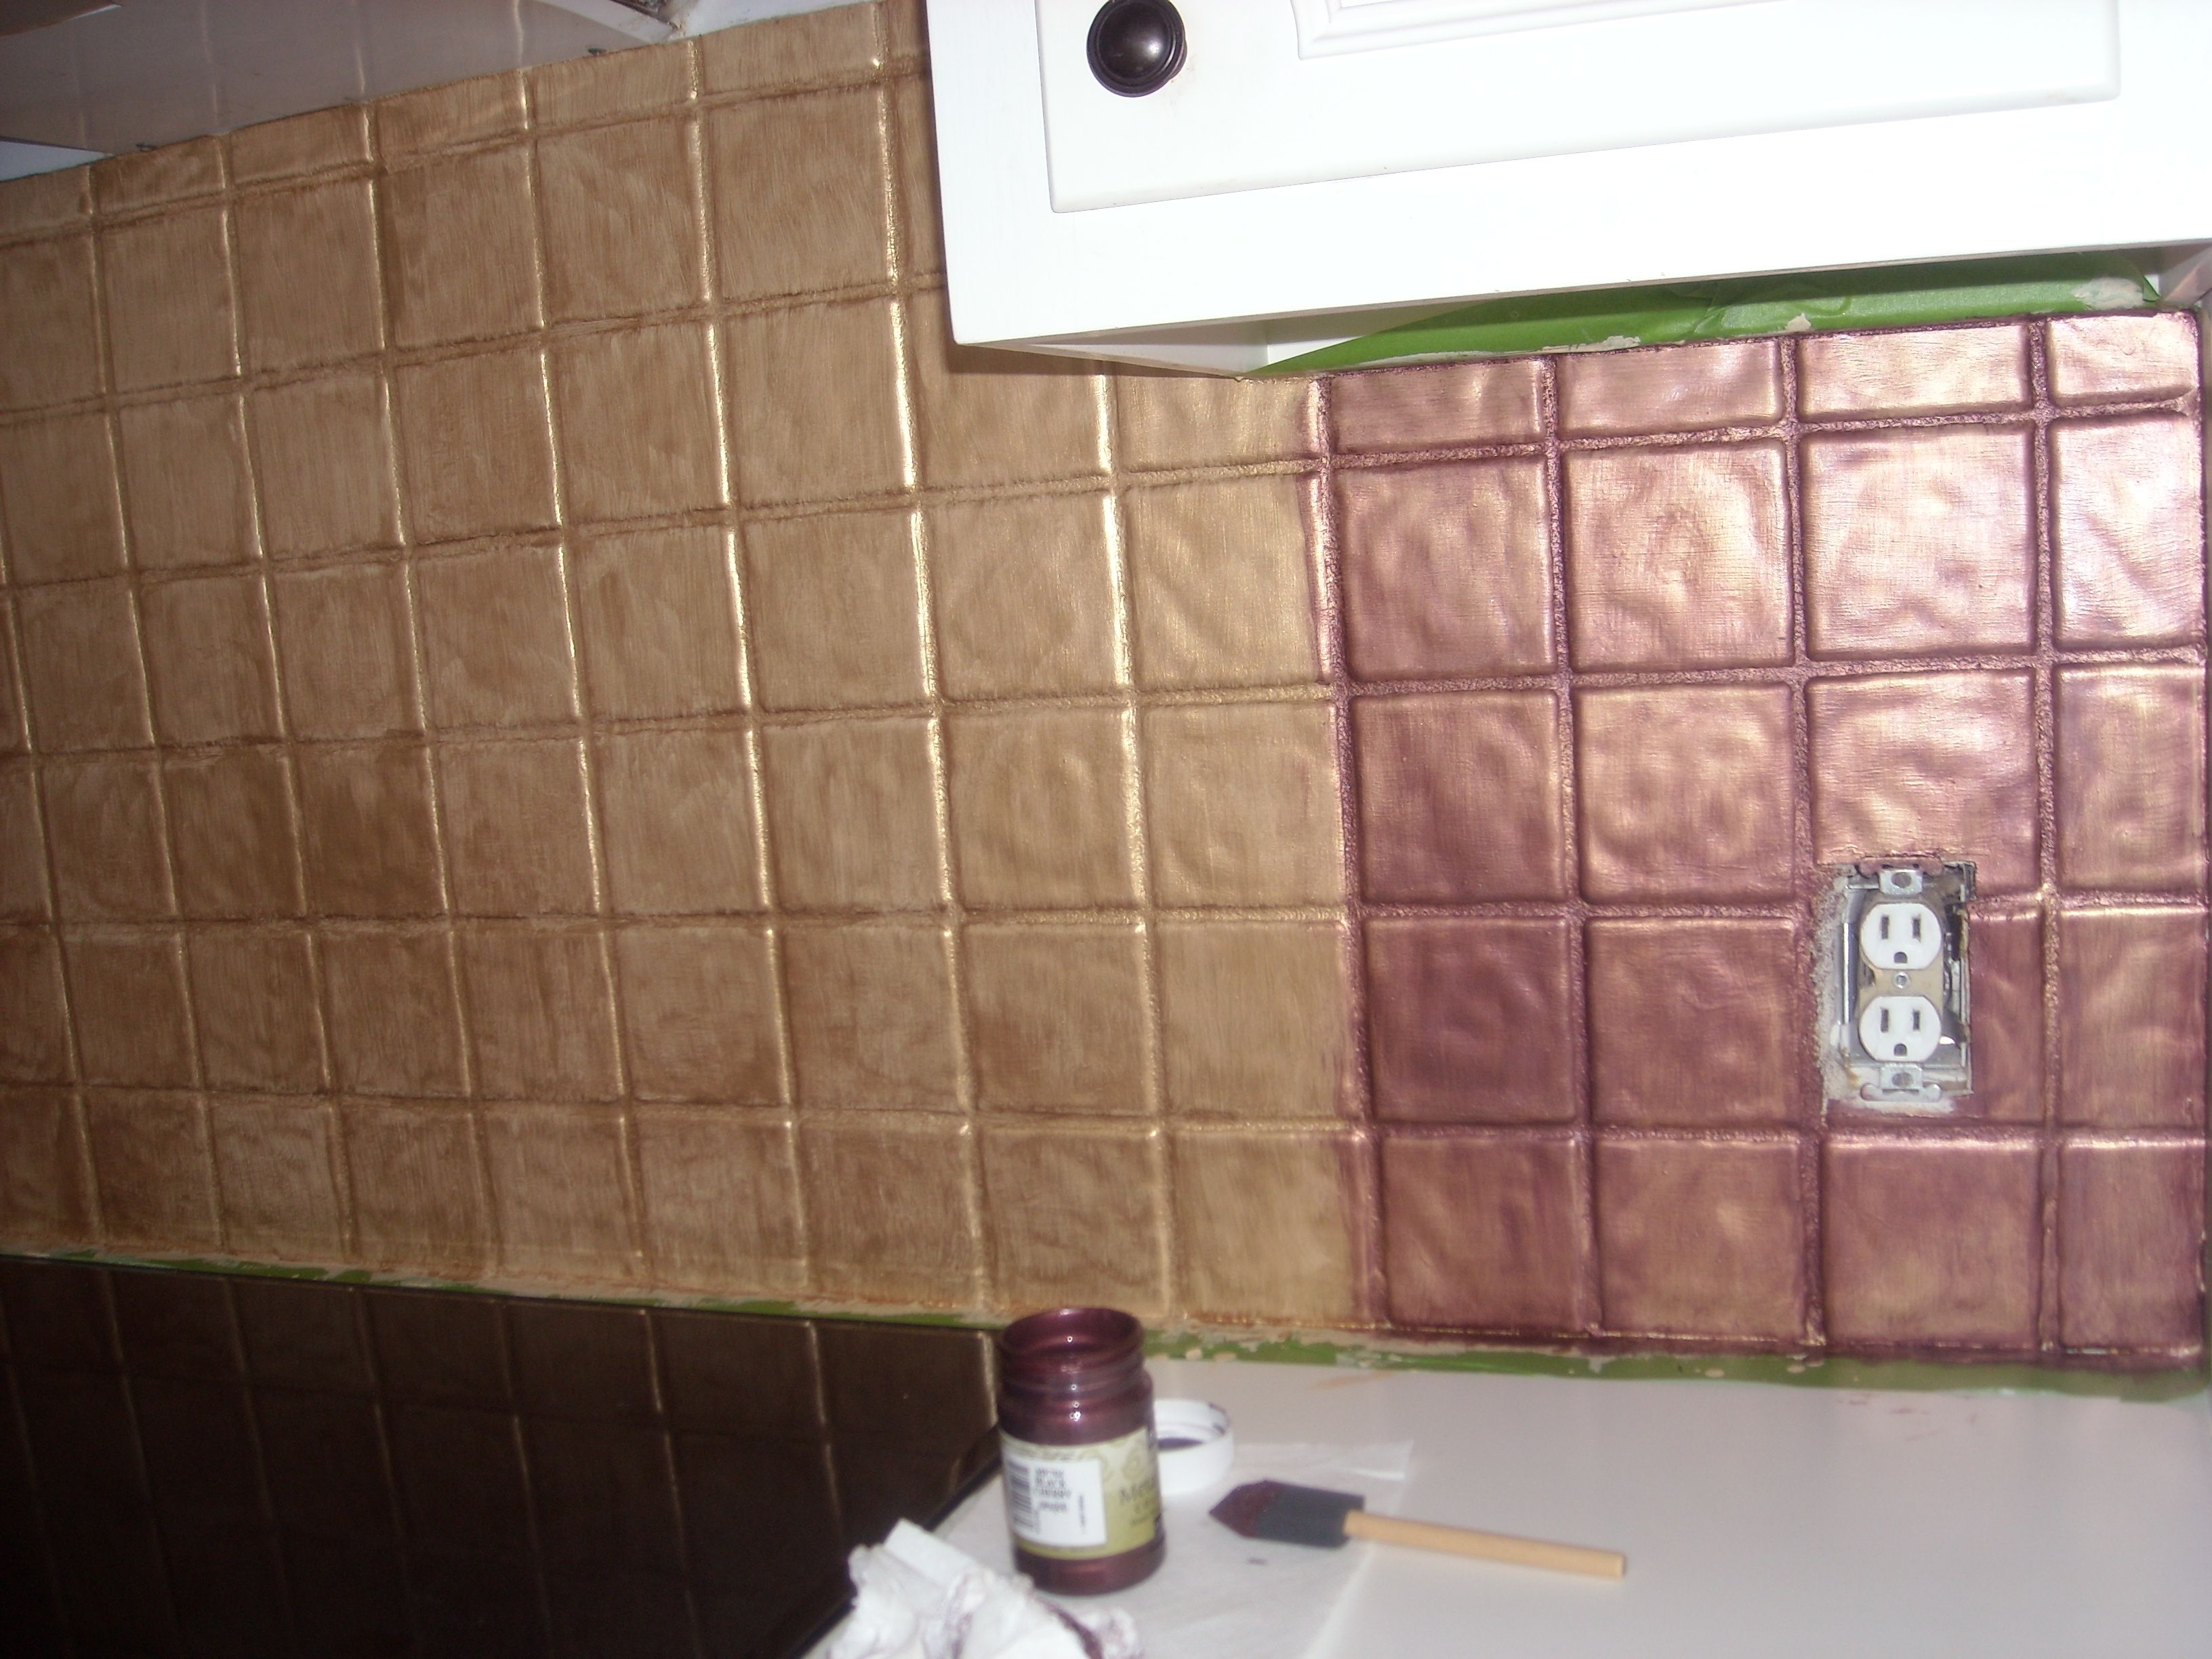 Yes You Can Paint Over Tile I Turned My Backsplash Kitchen Tiles Into Faux Metal Tiles